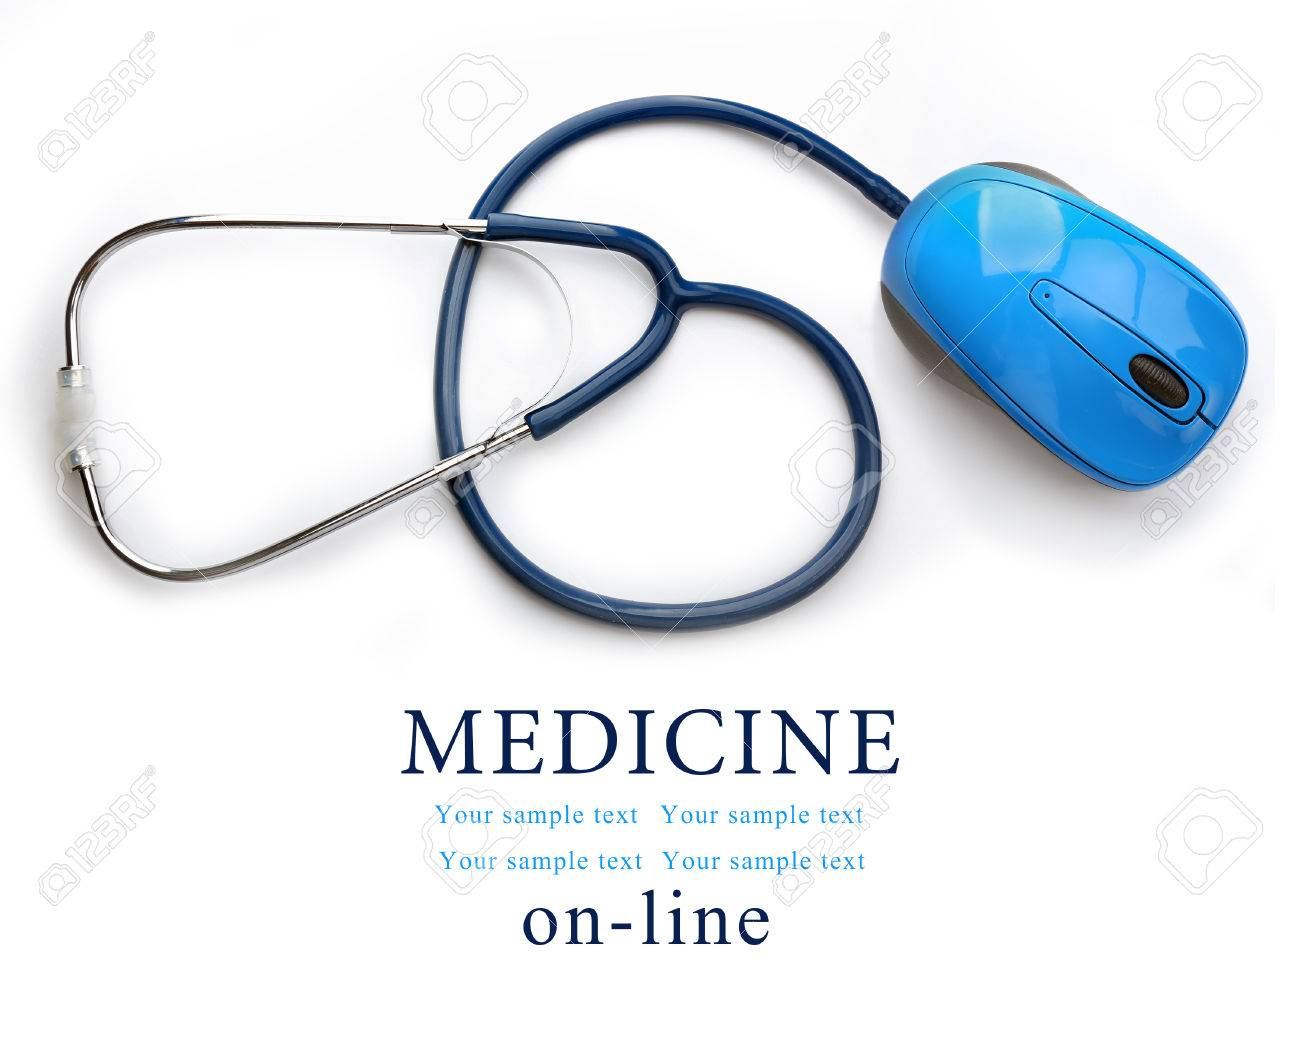 814e00e2dab Stethoscope with computer mouse isolated on white. Medical online concept  Stock Photo - 47550924